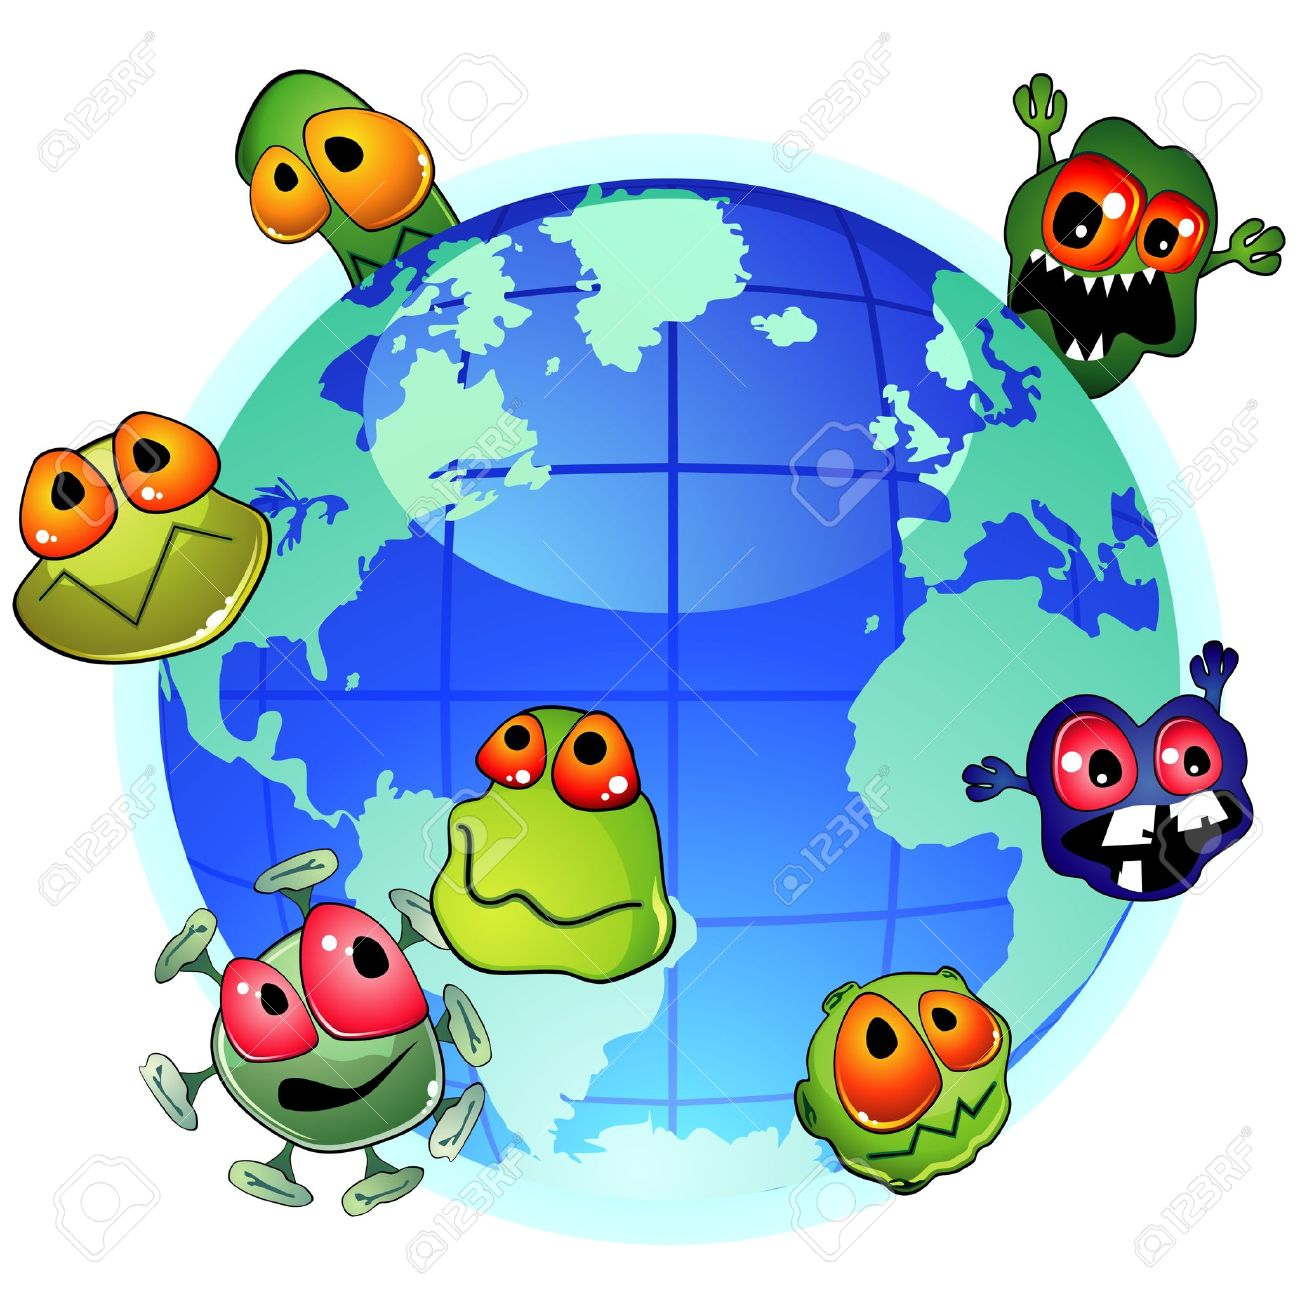 planet earth and evil germs around spreading infection royalty free rh 123rf com germs clipart black and white germs clipart black and white